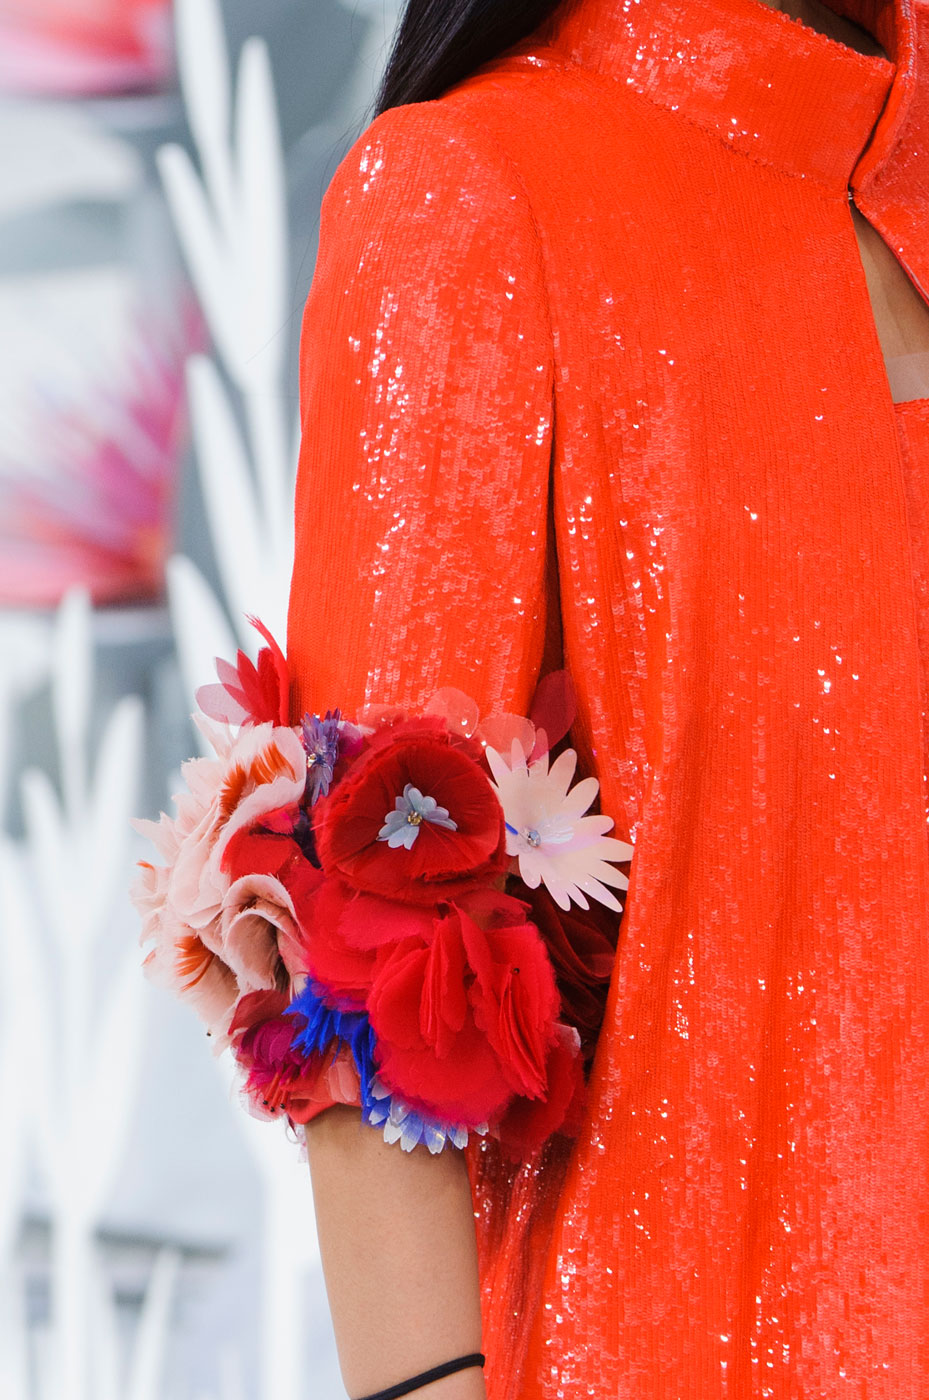 Chanel-fashion-runway-show-close-ups-haute-couture-paris-spring-summer-2015-the-impression-097